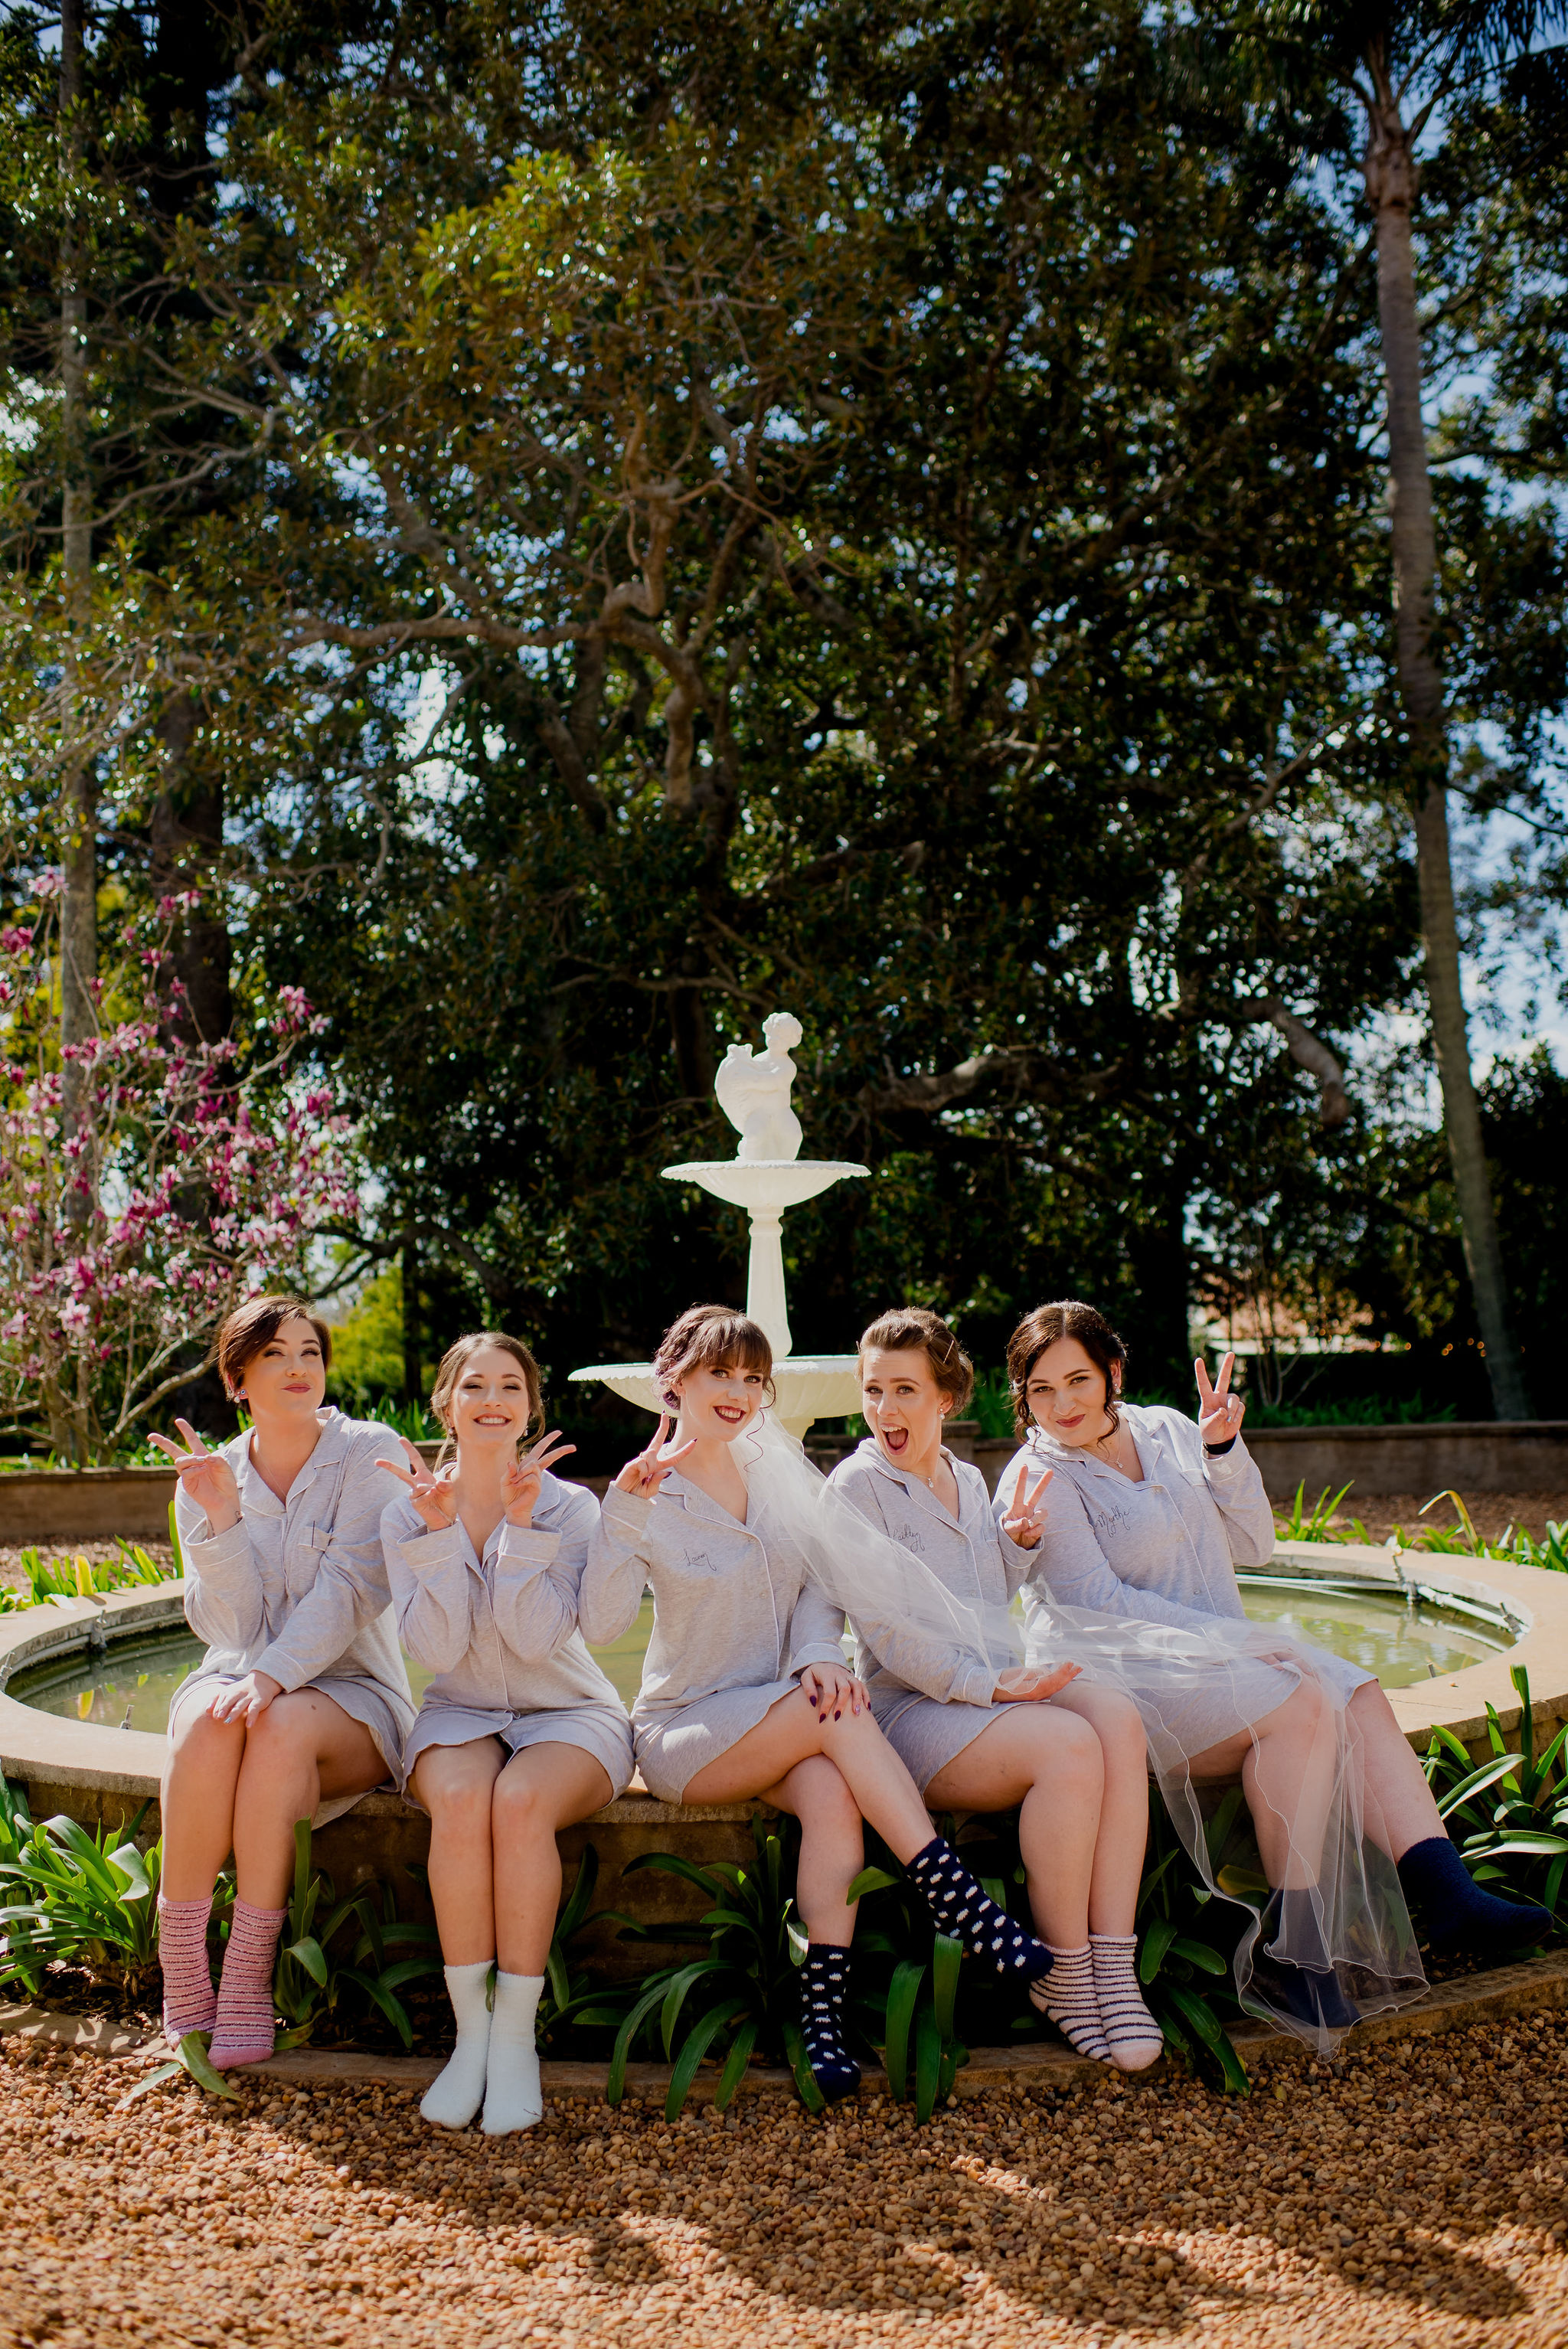 Bride-to-be and bridesmaids in pyjamas sitting on fountain